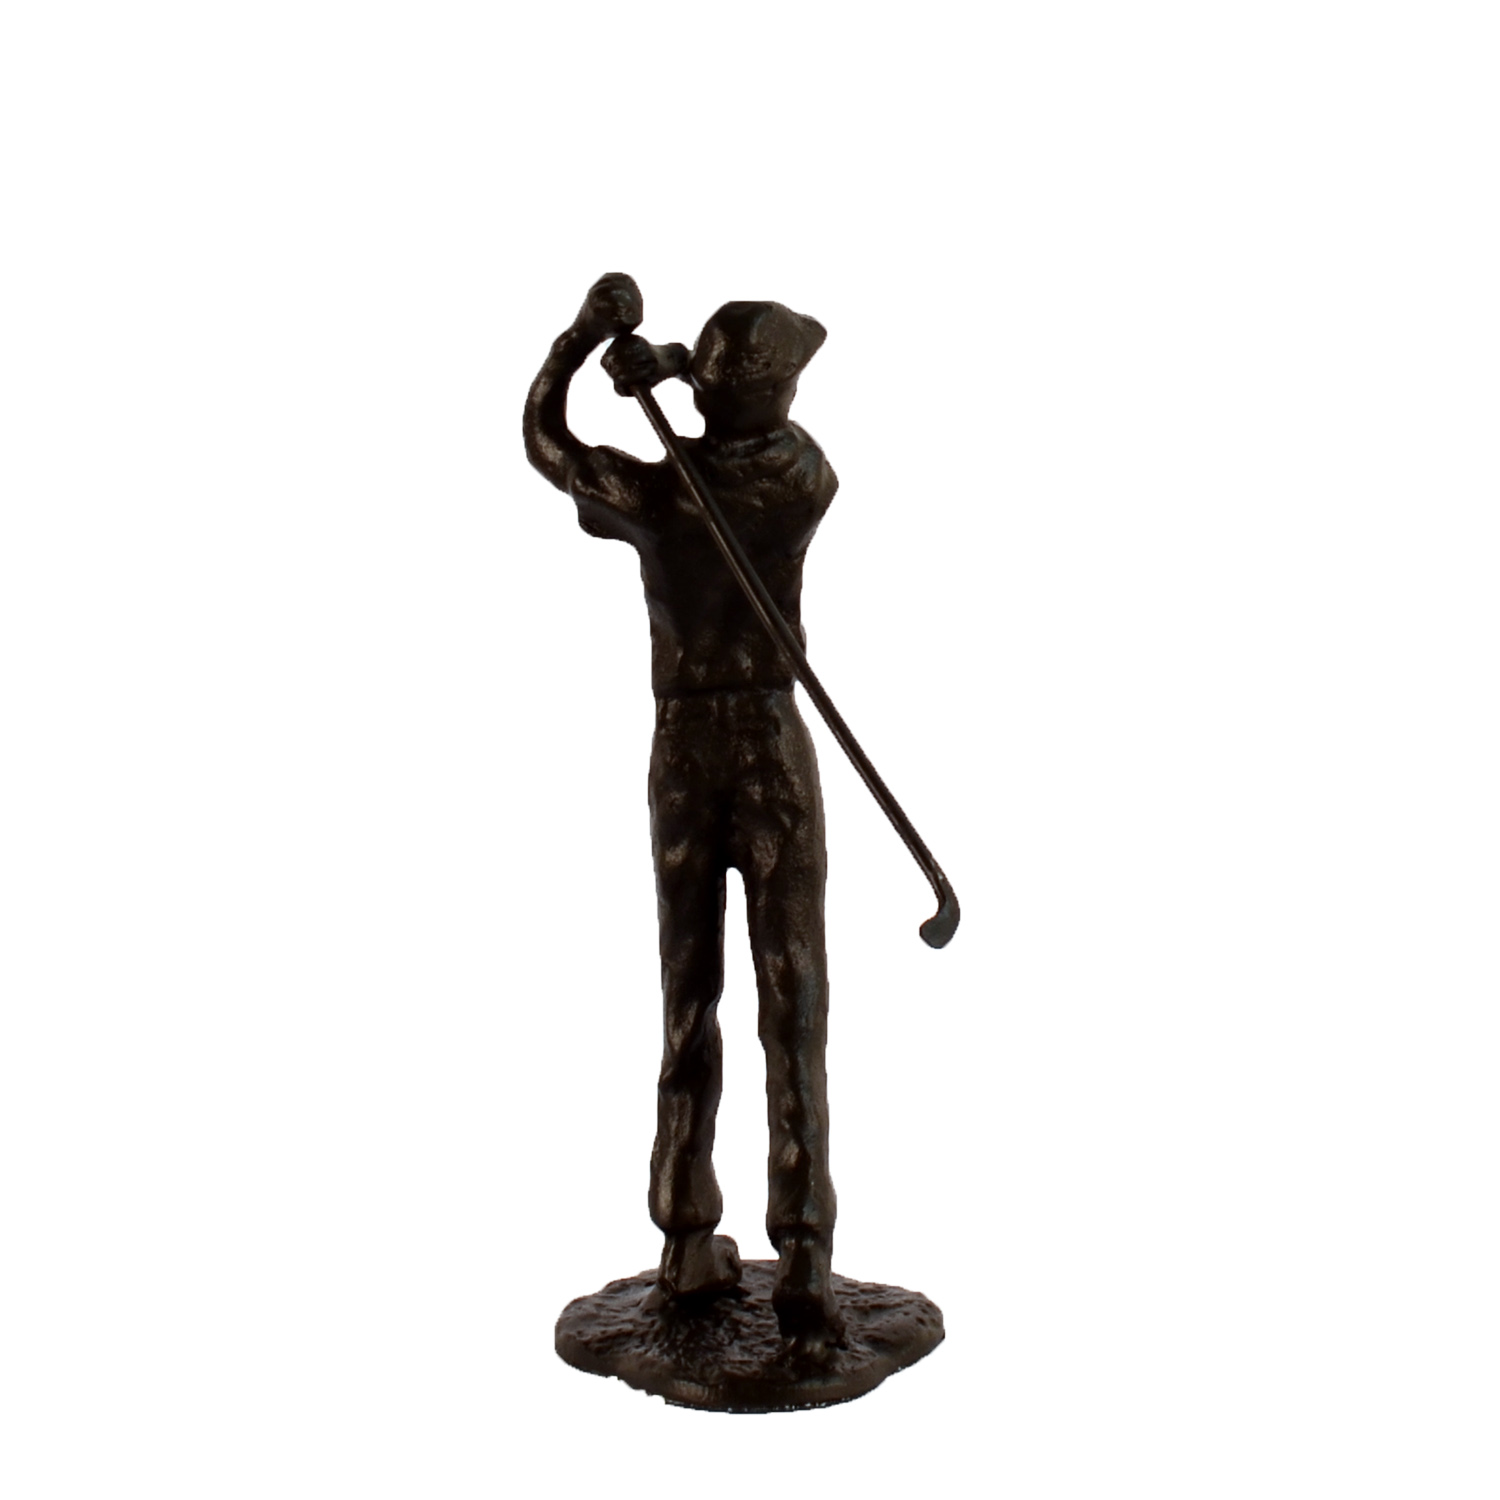 Elur Golfer Man Iron Figurine 22cm in Mocha Brown - Ruby's Garden Boutique